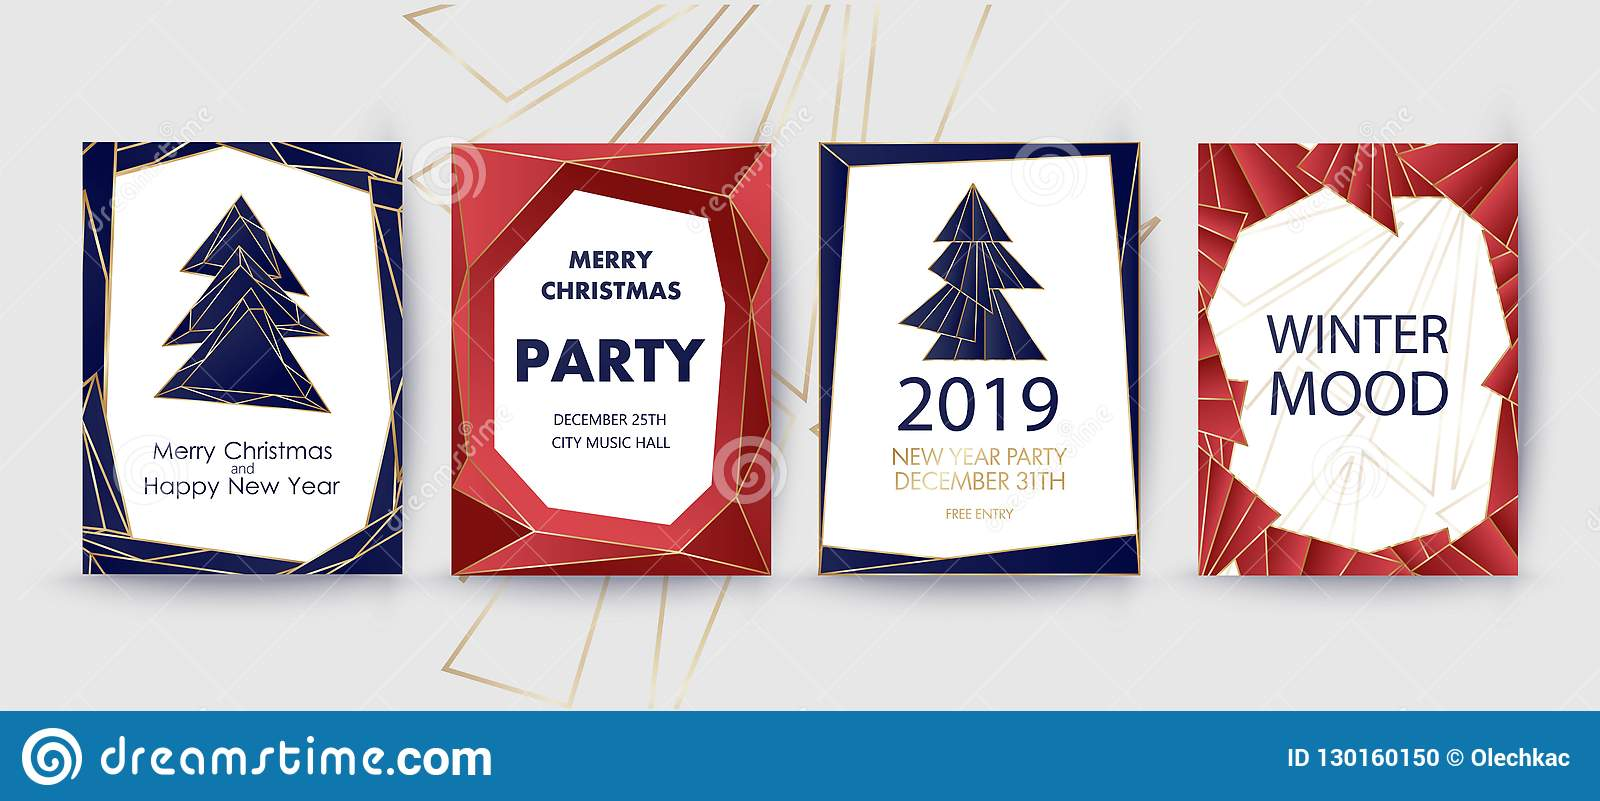 New Year And Merry Christmas Party Invitation Background Geometric